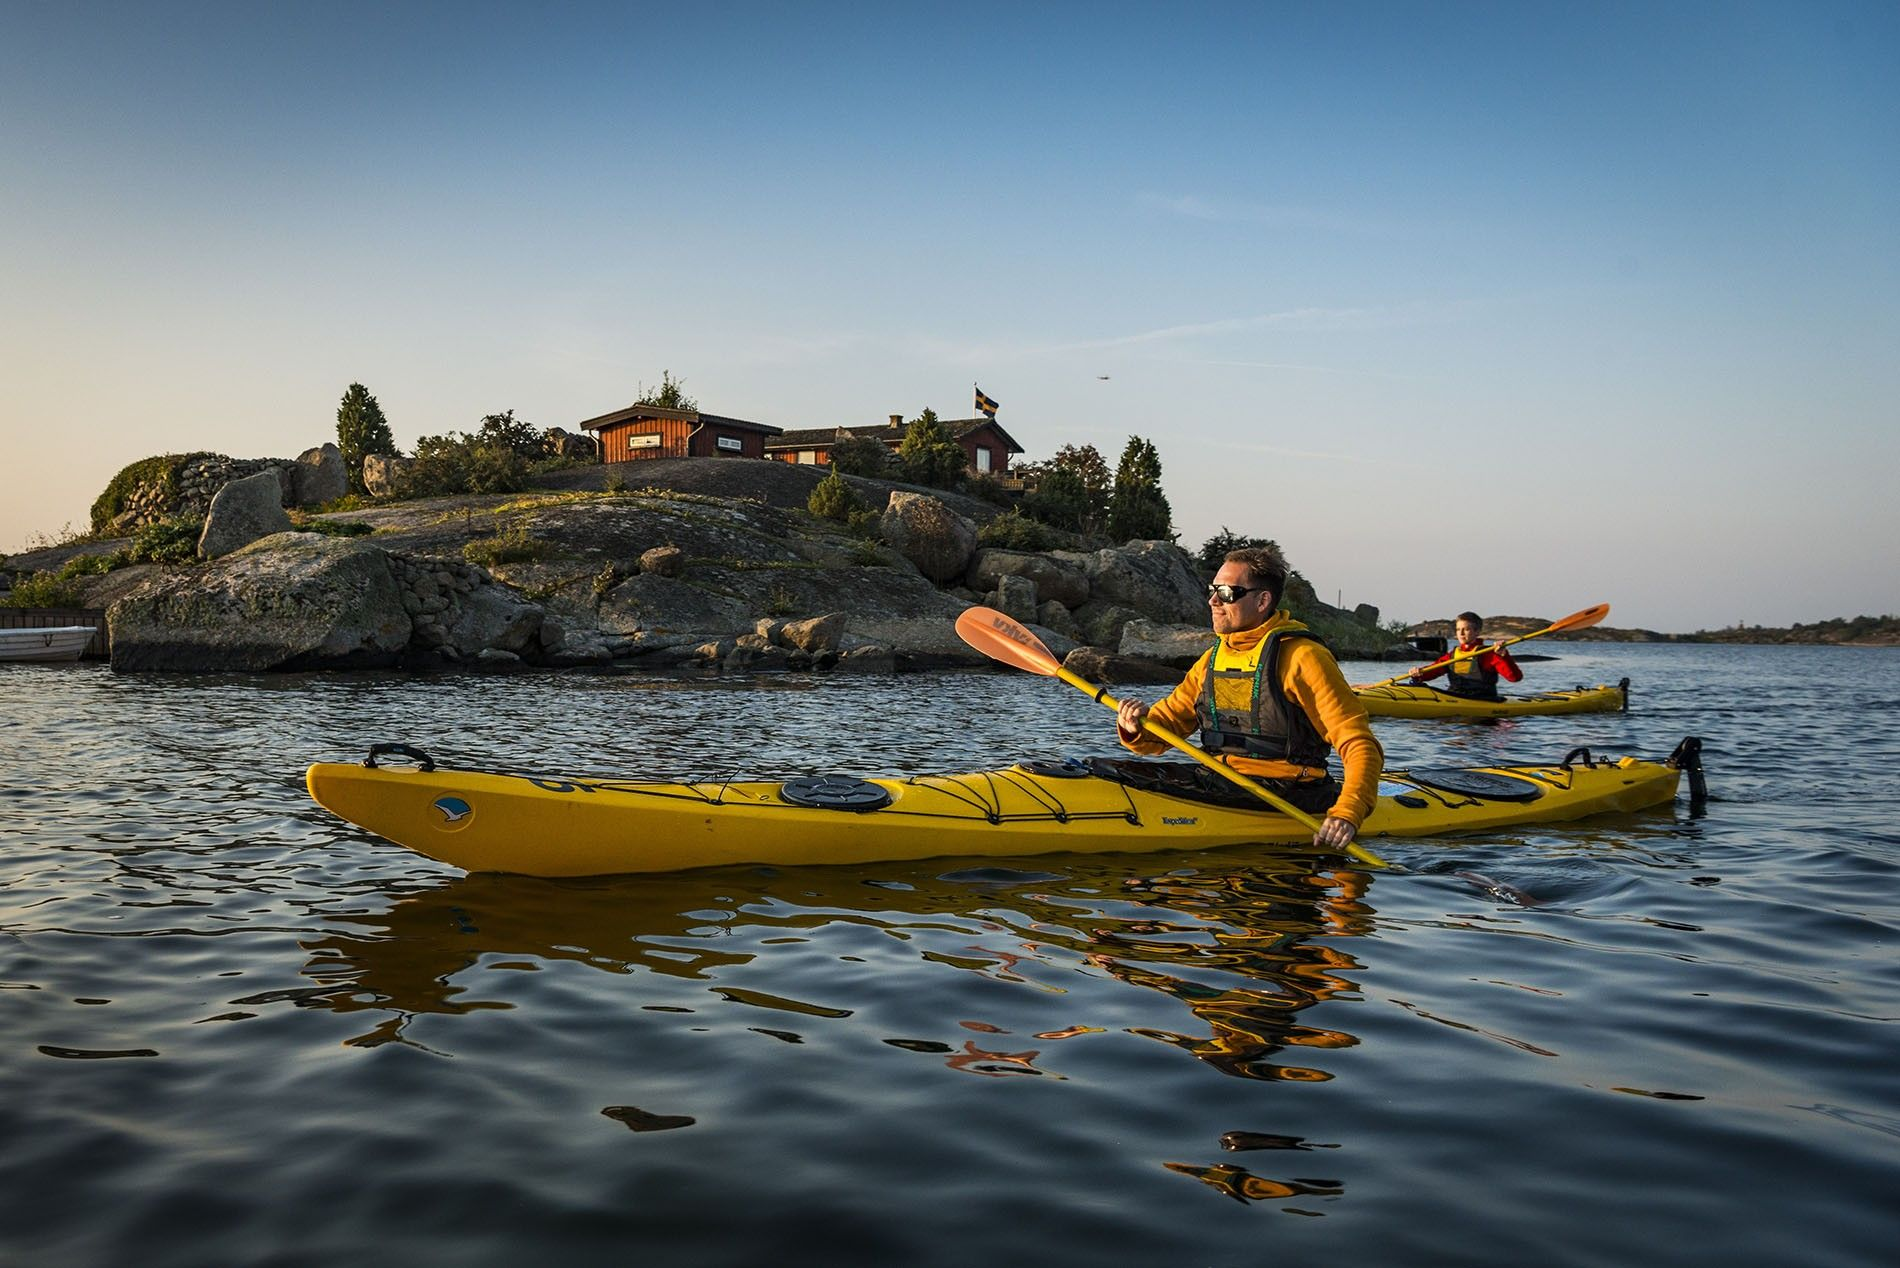 Discover the sea trails of the Baltic region of Blekinge, Sweden